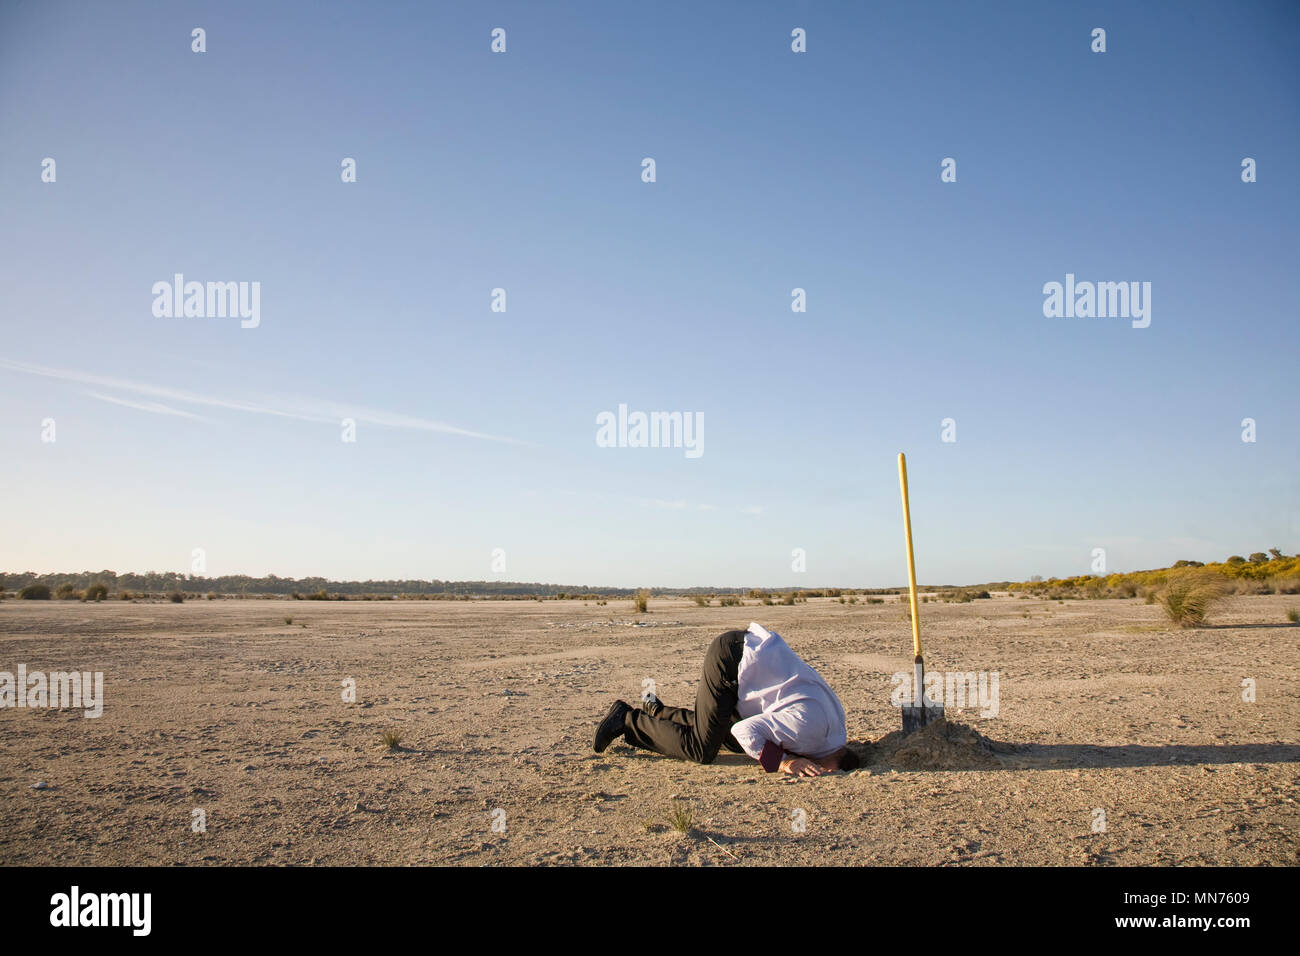 A professional with his head buried in the sand. - Stock Image